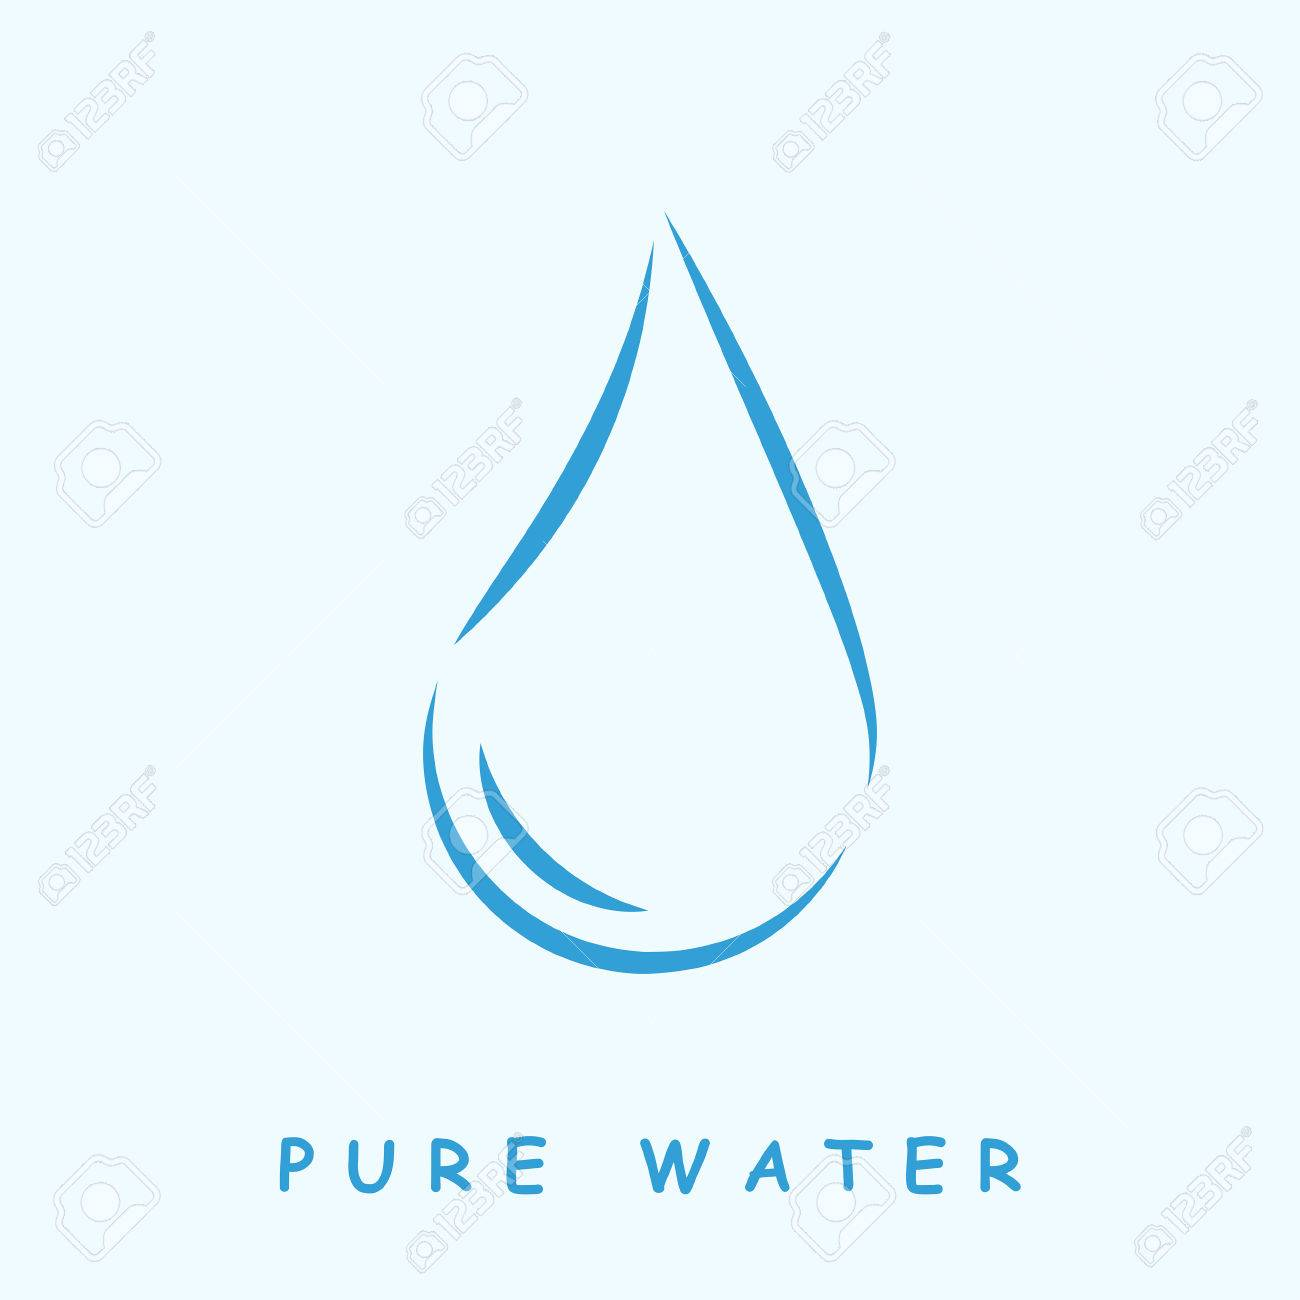 pure water logo 2d